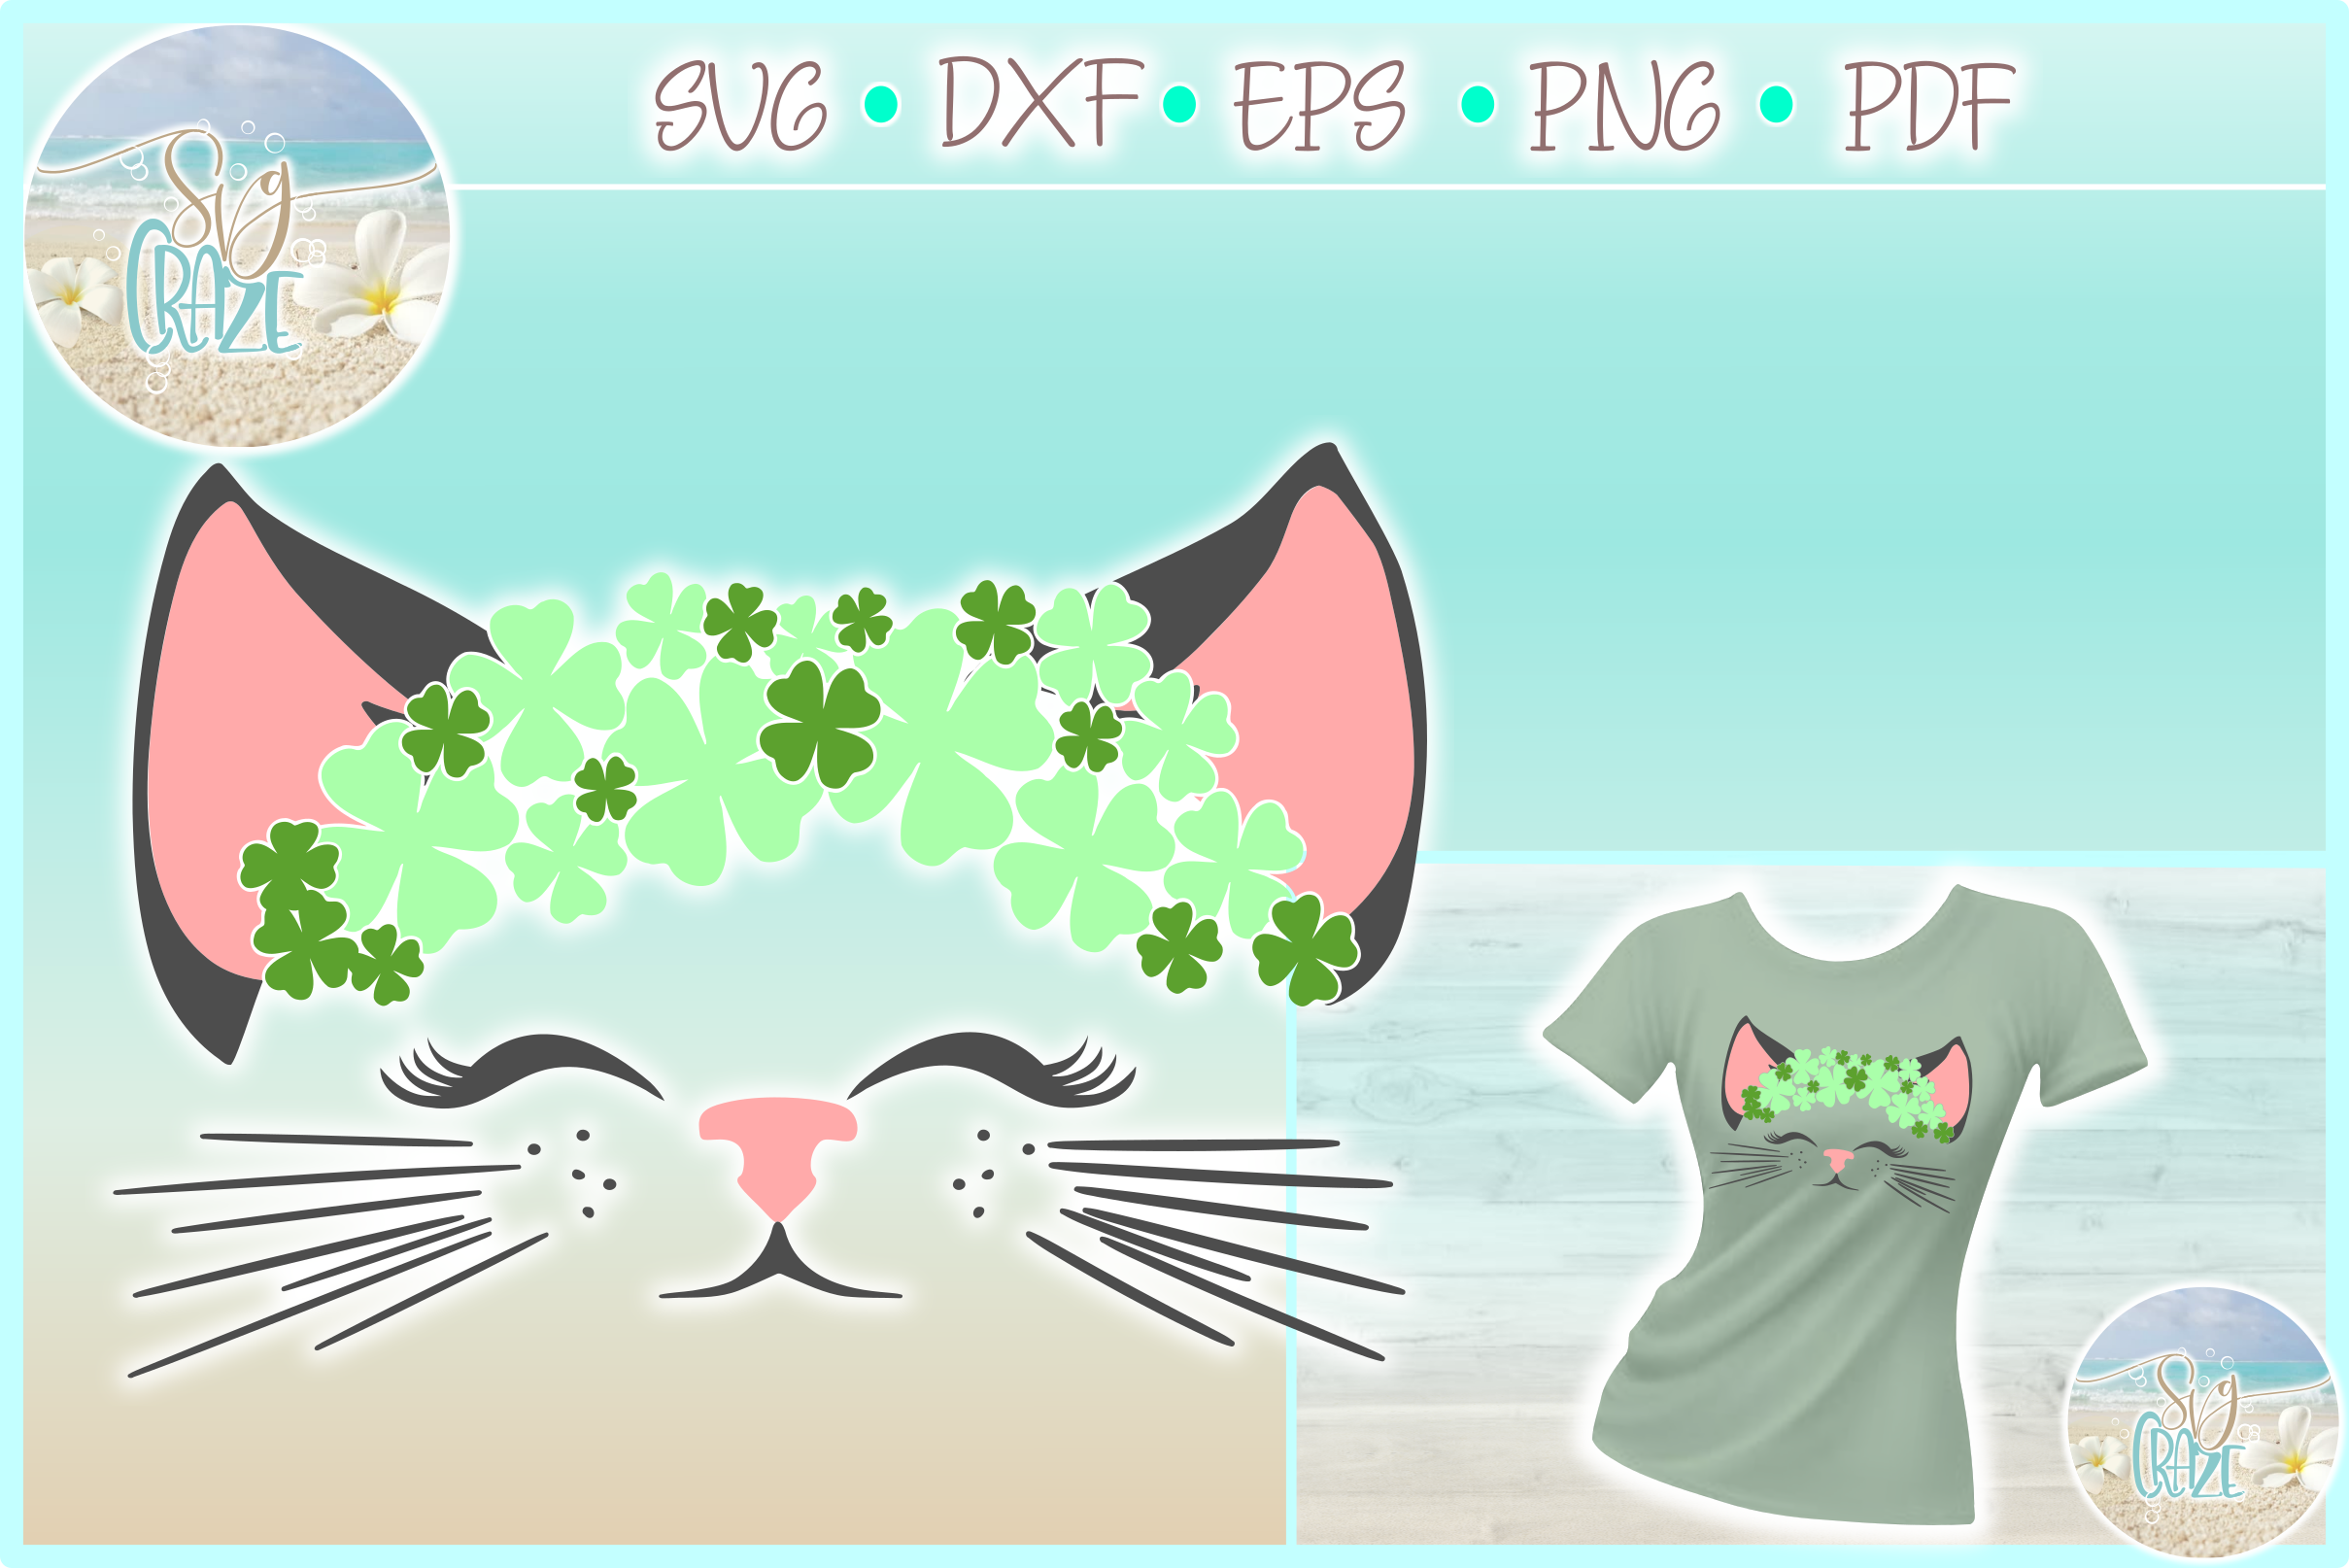 Cat Face With Clovers SVG Dxf Eps Png PDF example image 1